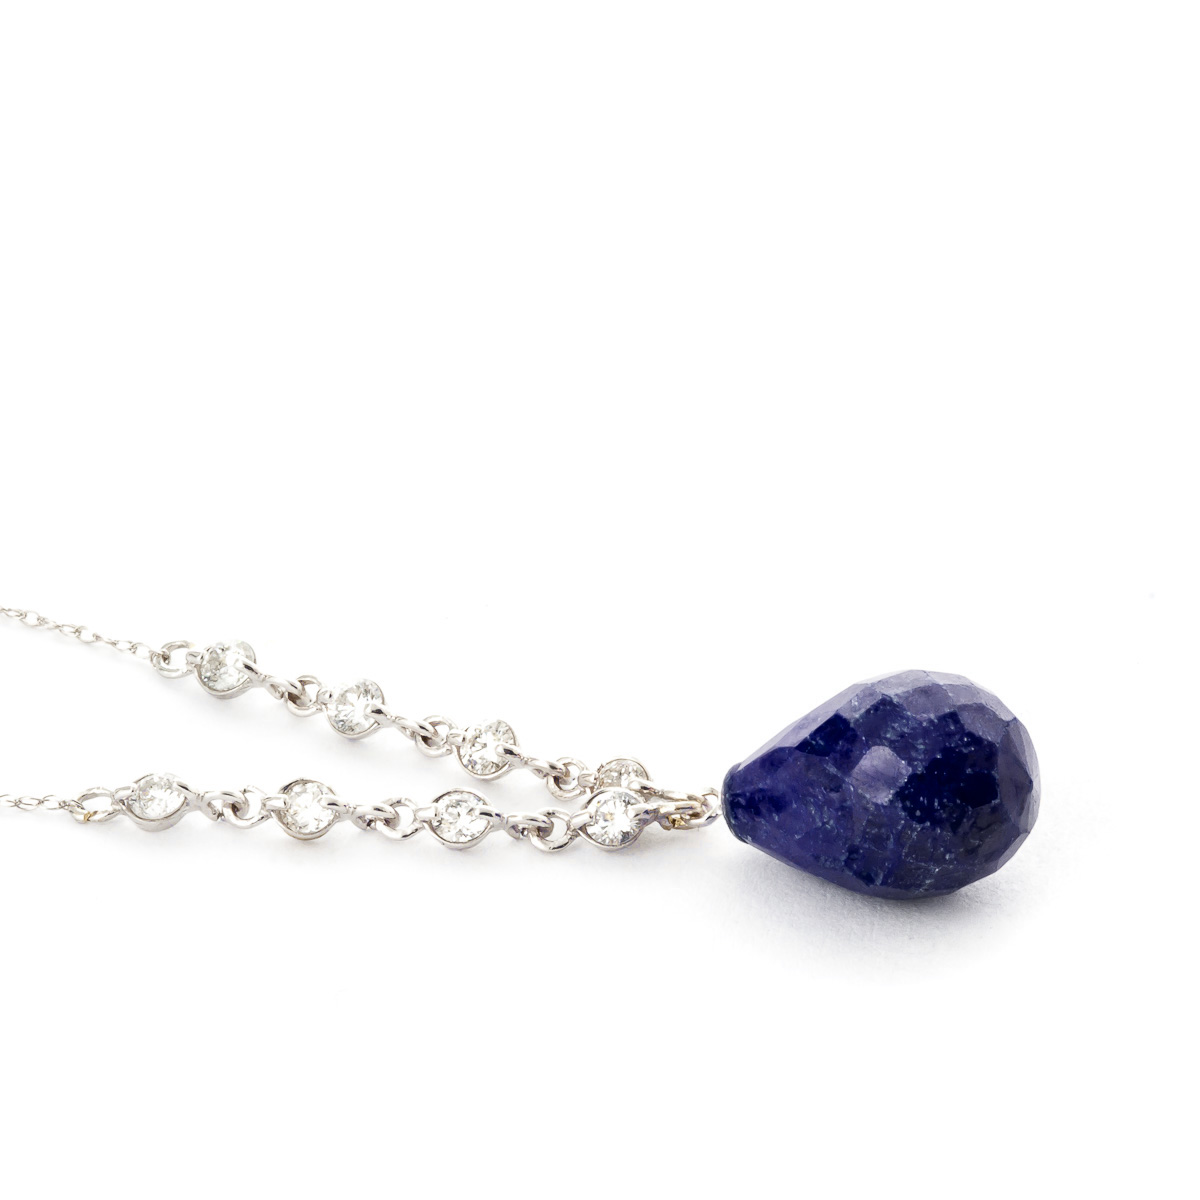 Briolette Cut Sapphire Pendant Necklace 15.6 ctw in 9ct White Gold